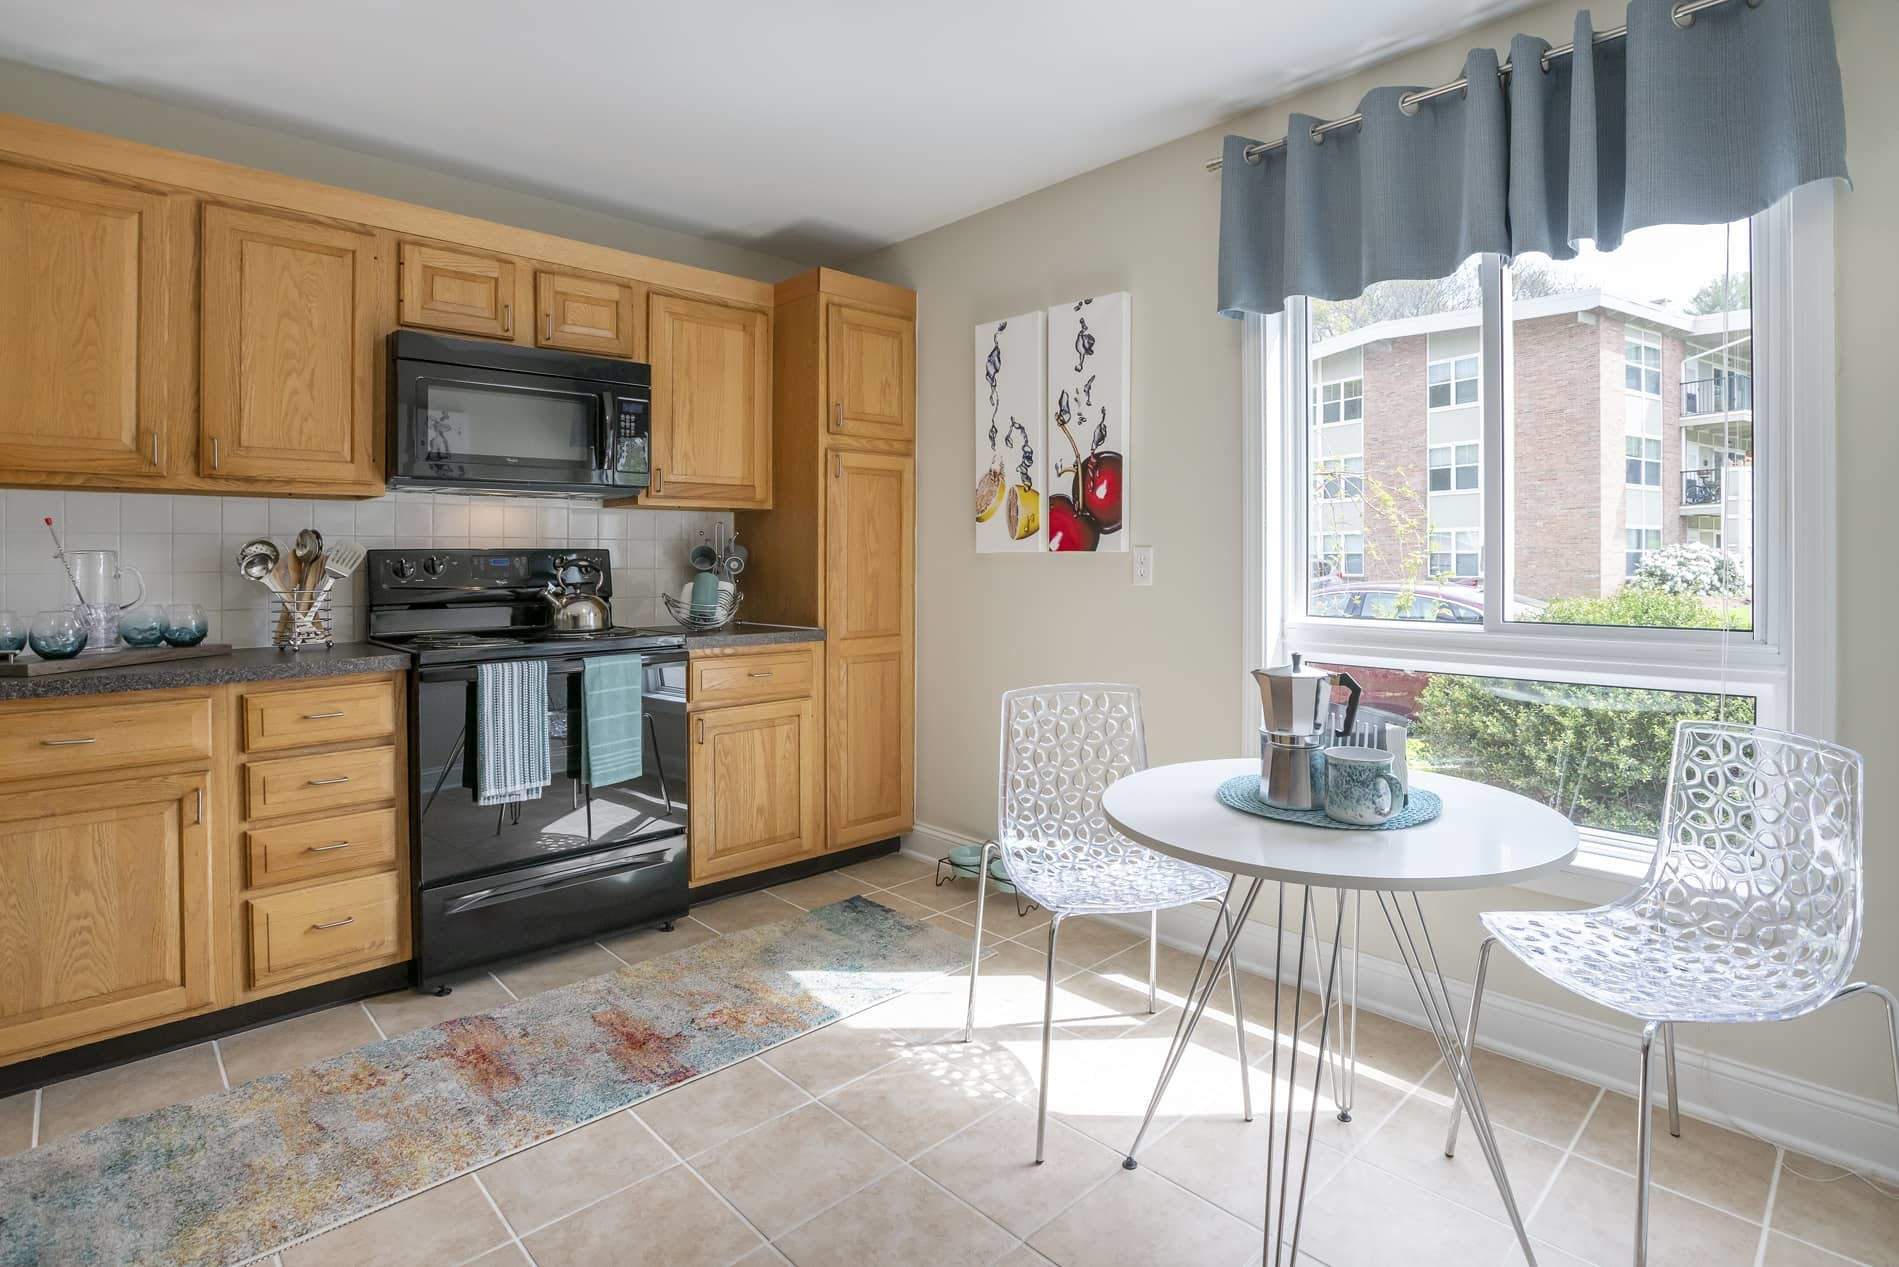 1 Bed, 1 Bath apartment in Norwood for $1,679